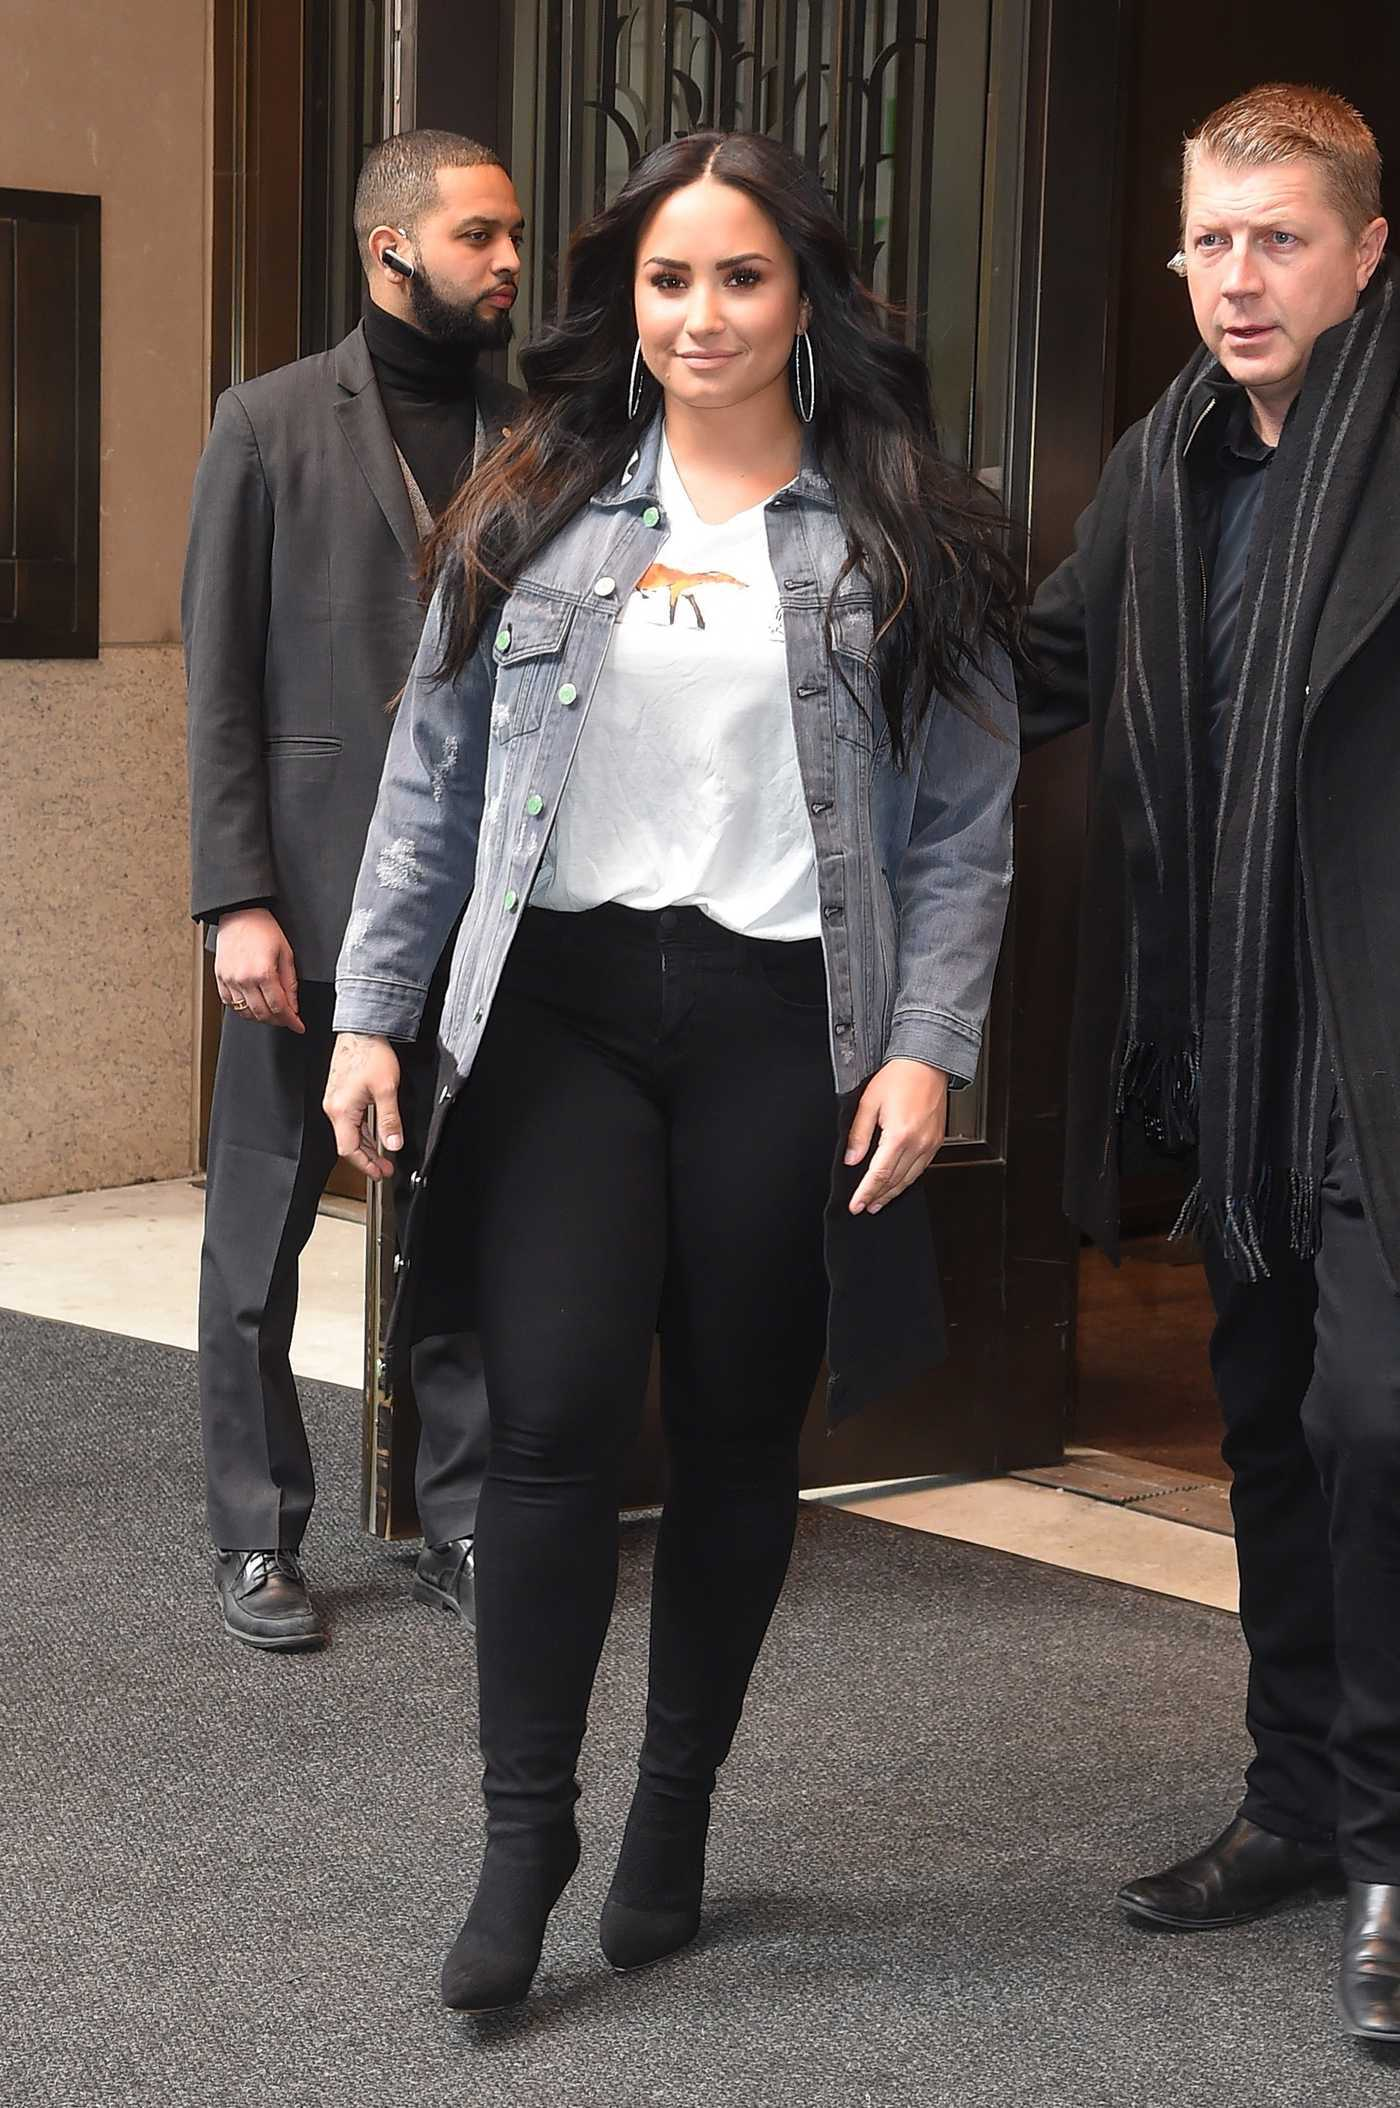 Demi Lovato Stops to Pose for Selfies with Fans Out in NYC 03/23/2018